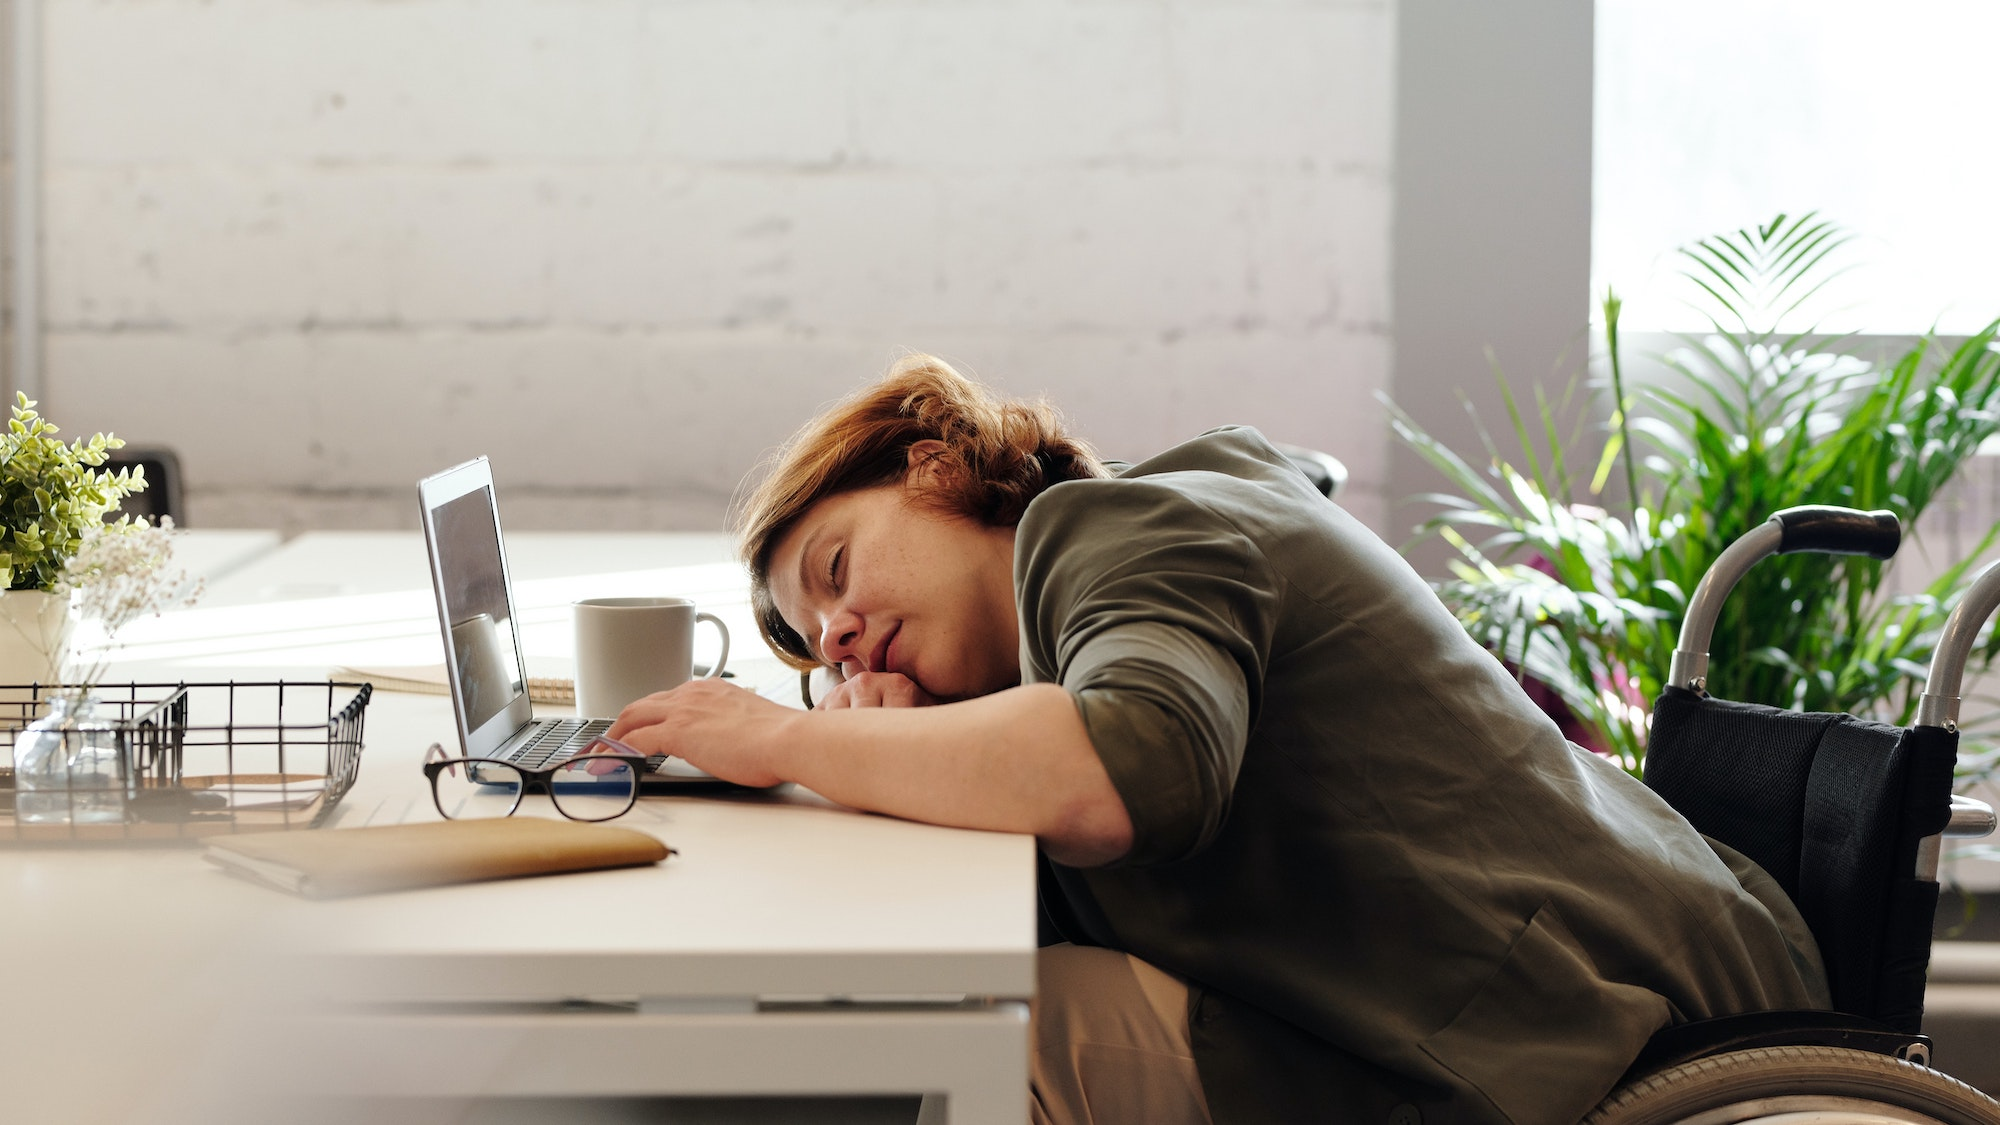 Woman asleep at her laptop after getting bad sleep due to teeth grinding at night